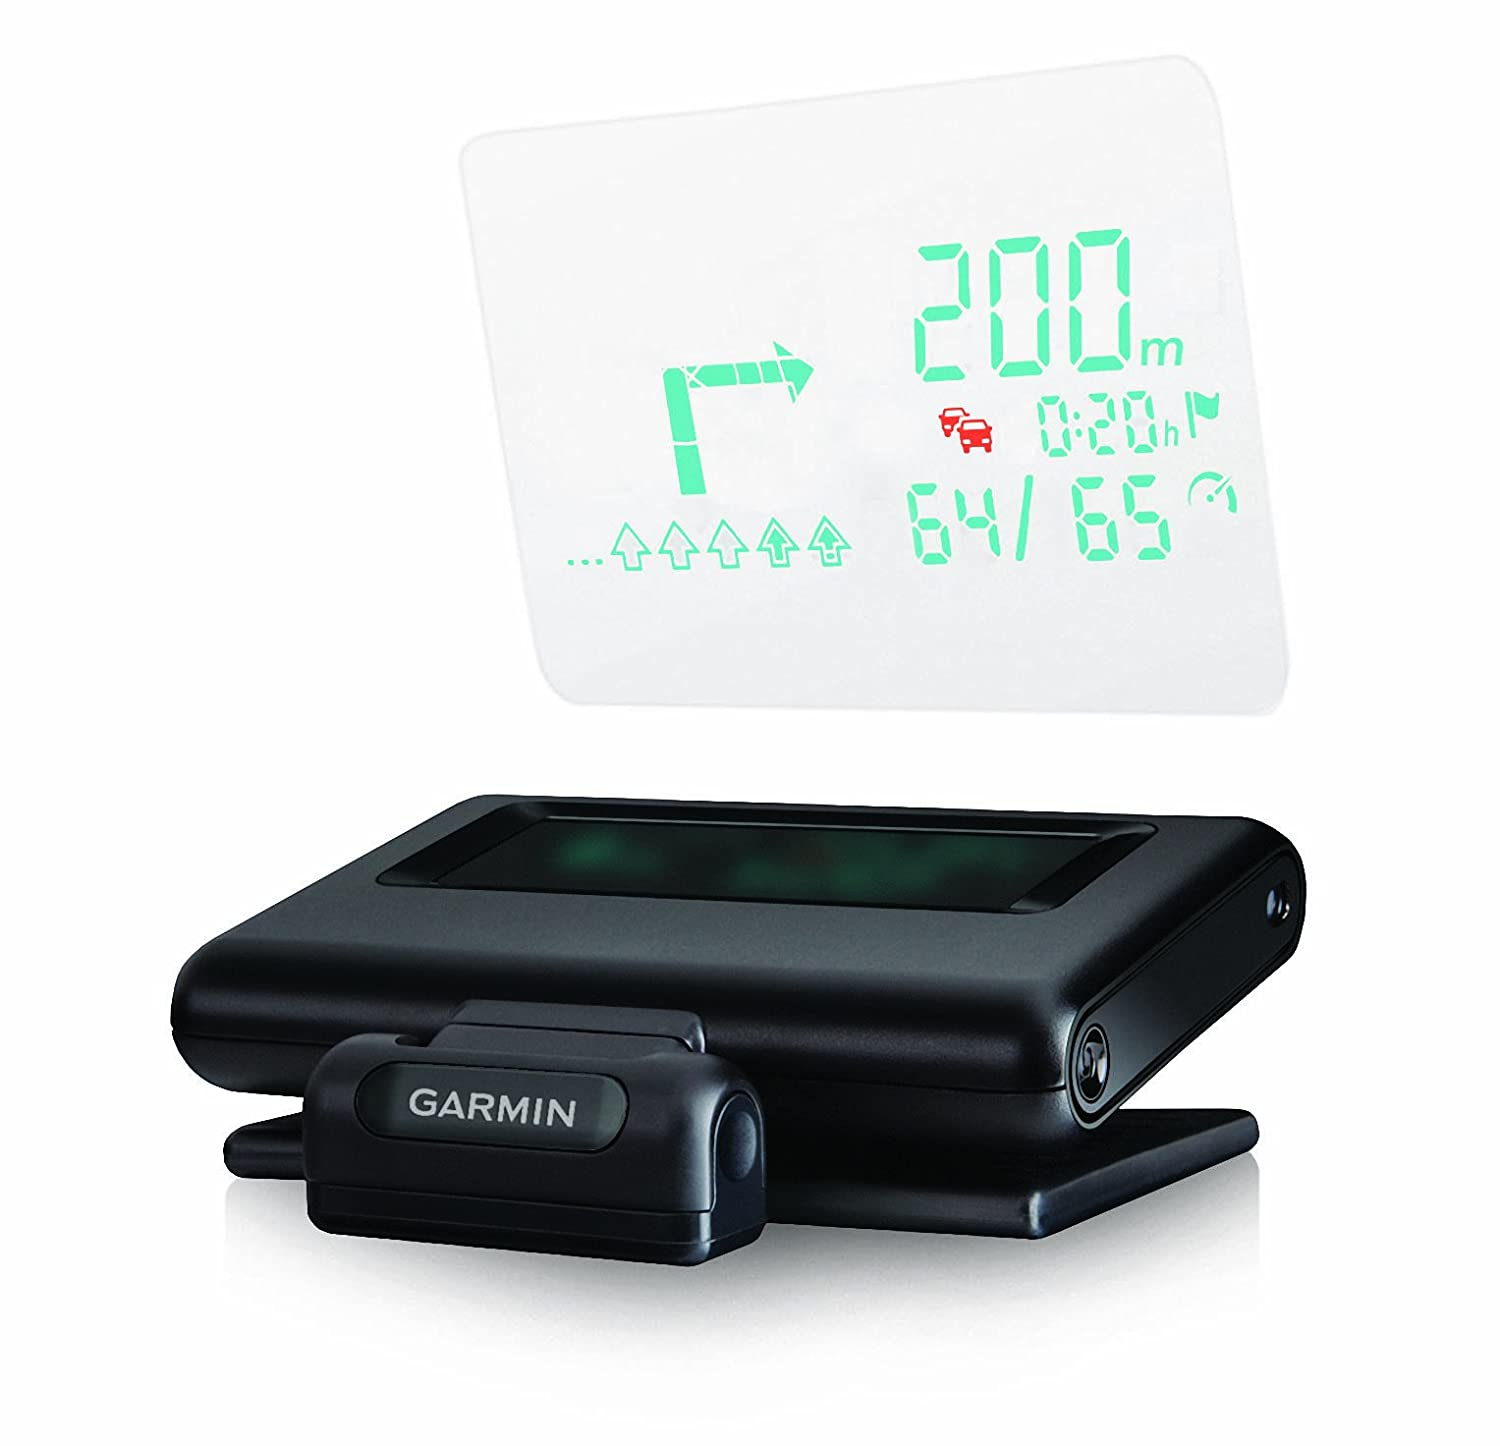 garmin hud afficheur t te haute avec application pour smartphone ebay. Black Bedroom Furniture Sets. Home Design Ideas